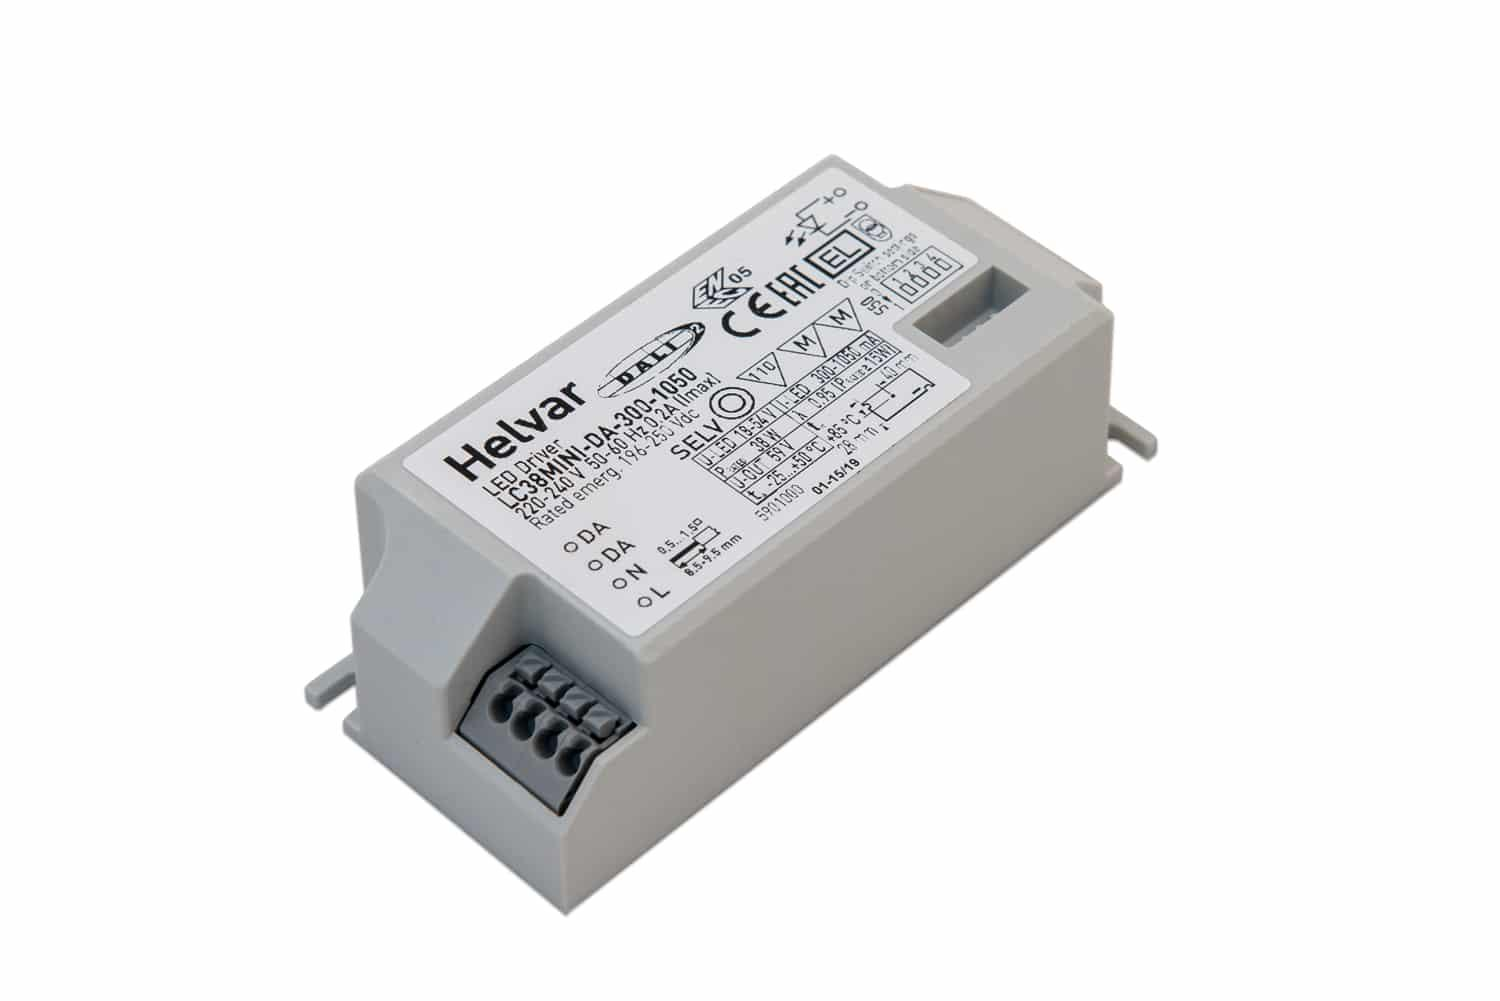 Small sized LED driver for light fittings